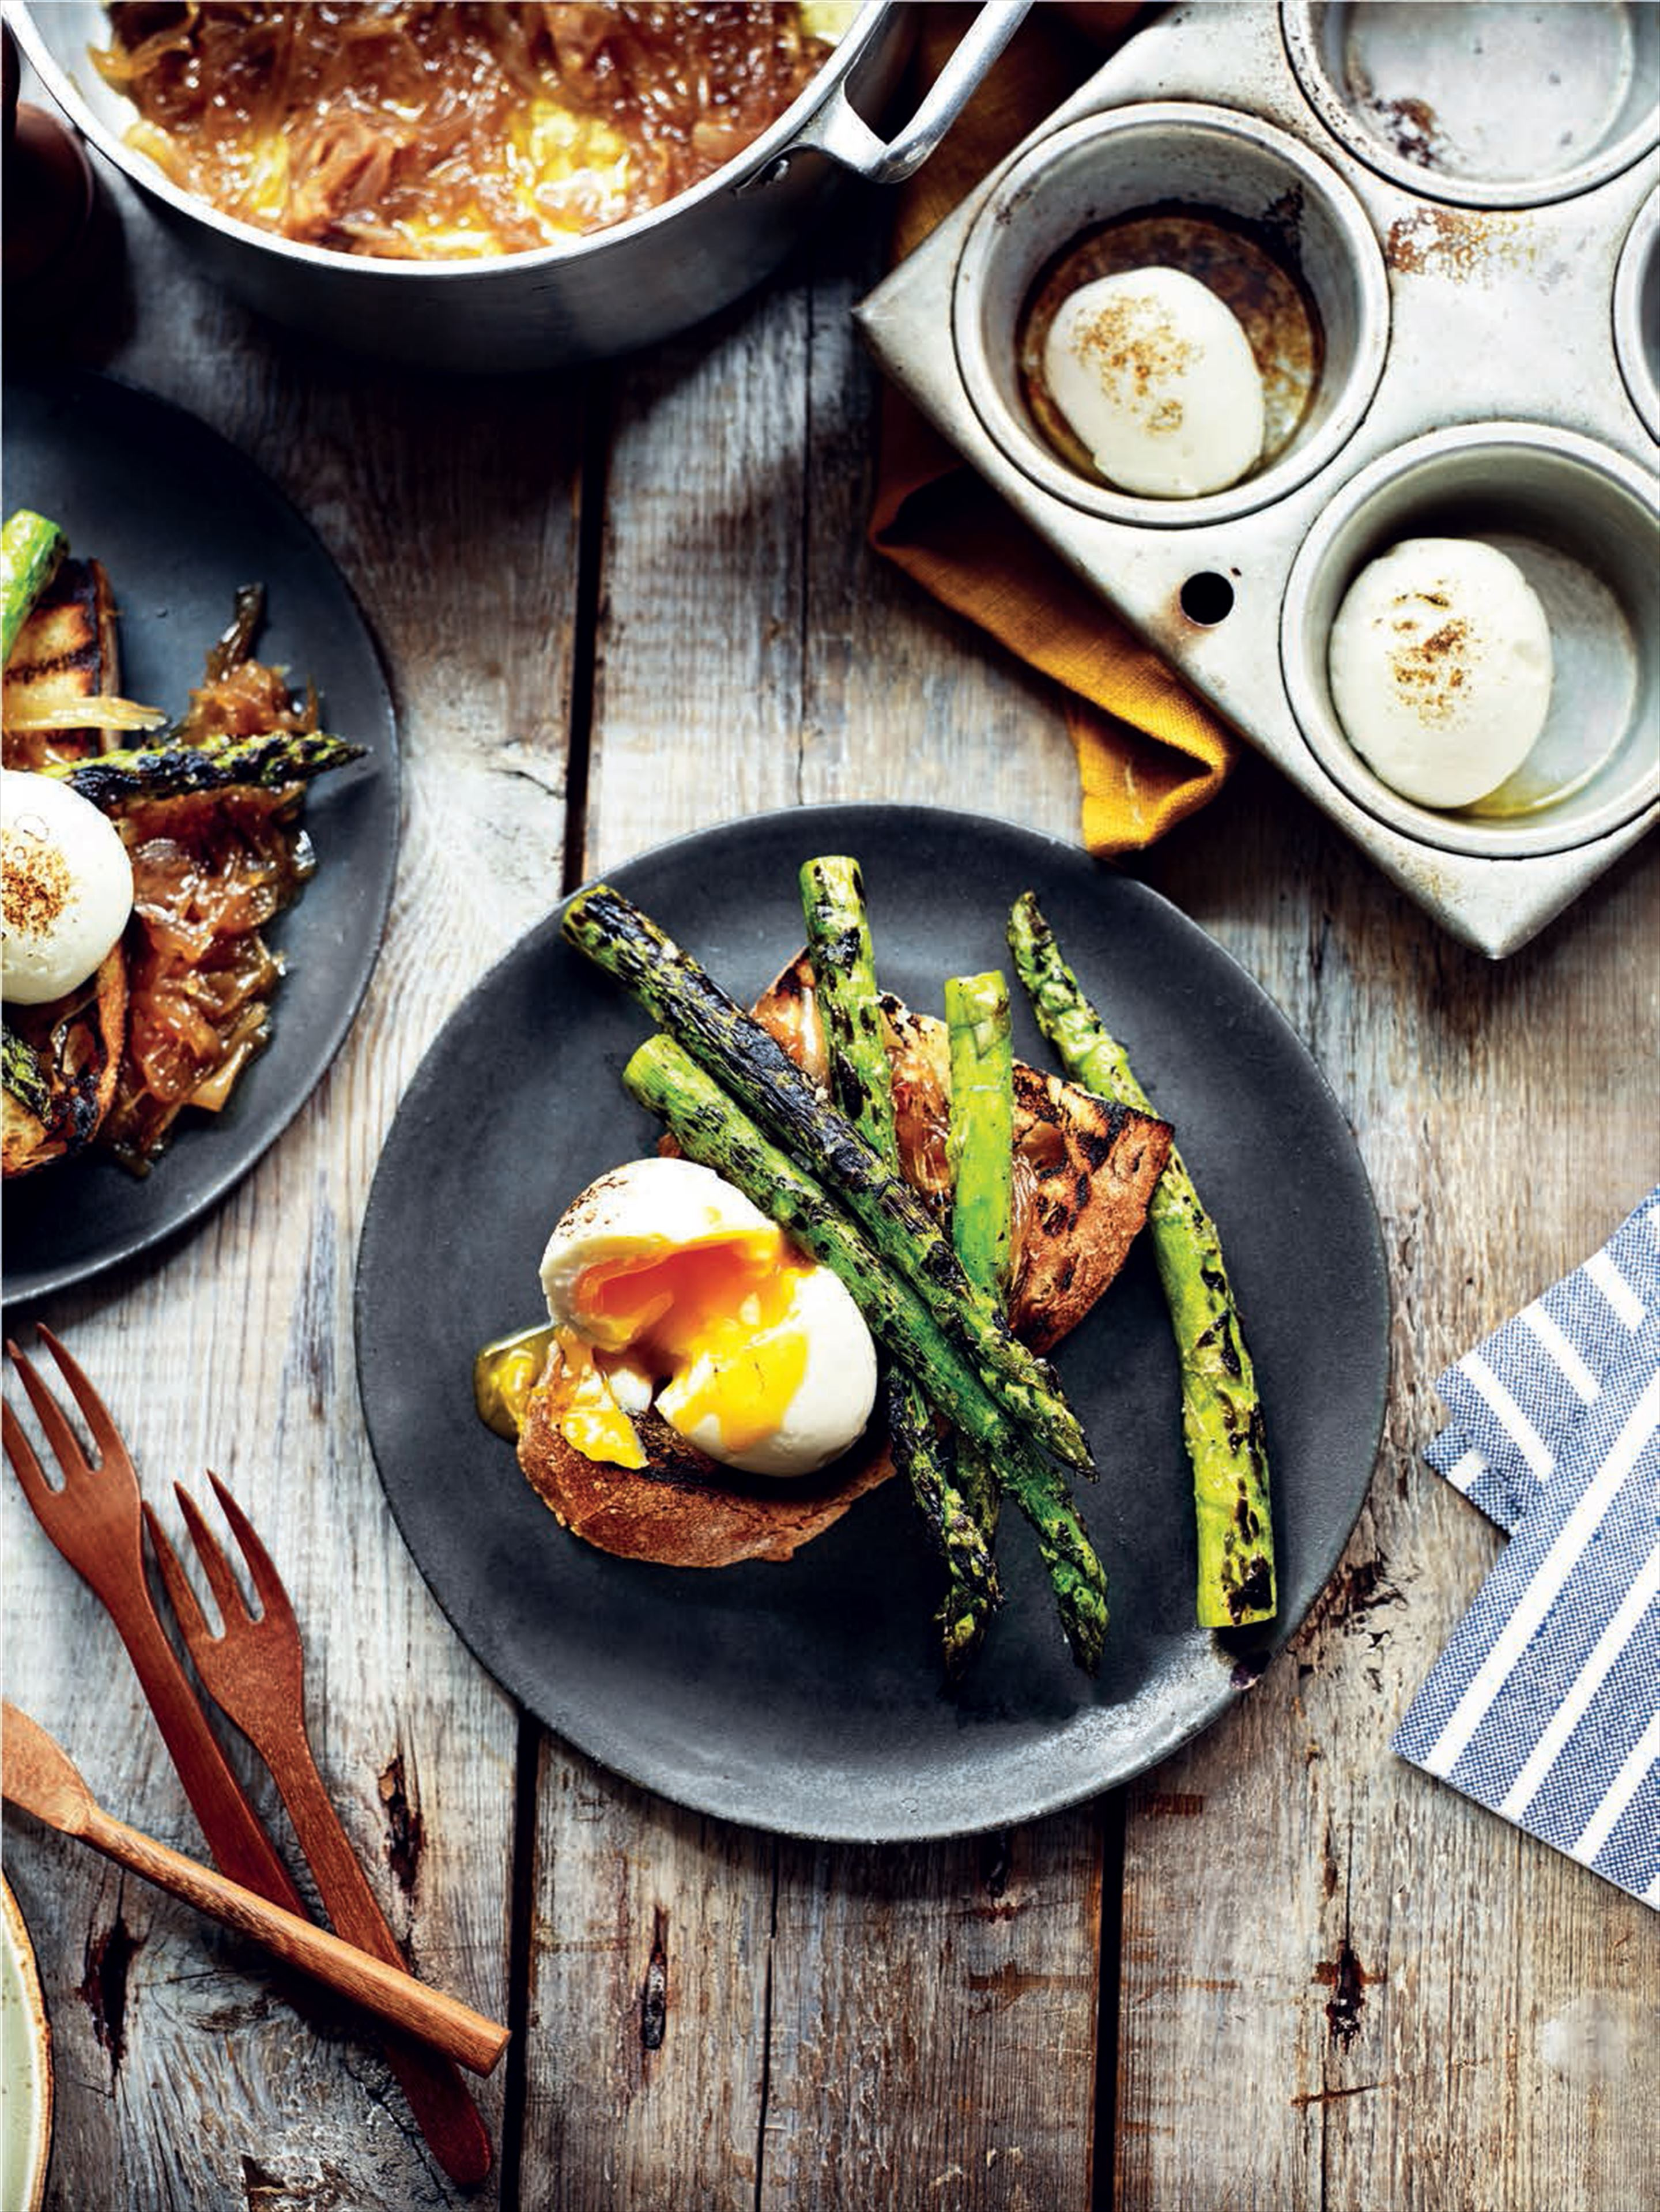 Smoky eggs with asparagus and sweet shallots on sourdough